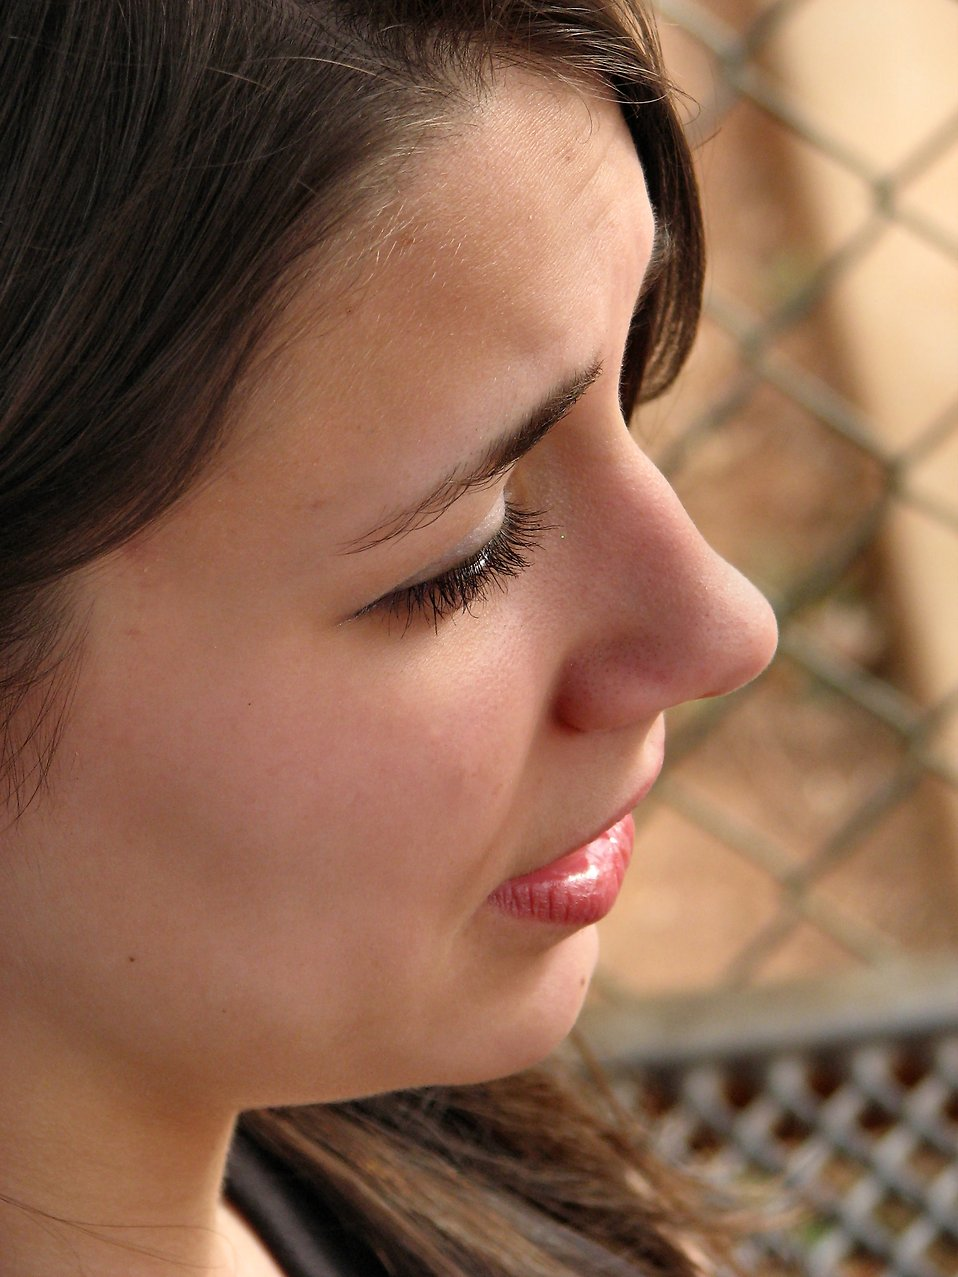 Closeup of a teen girl's face : Free Stock Photo